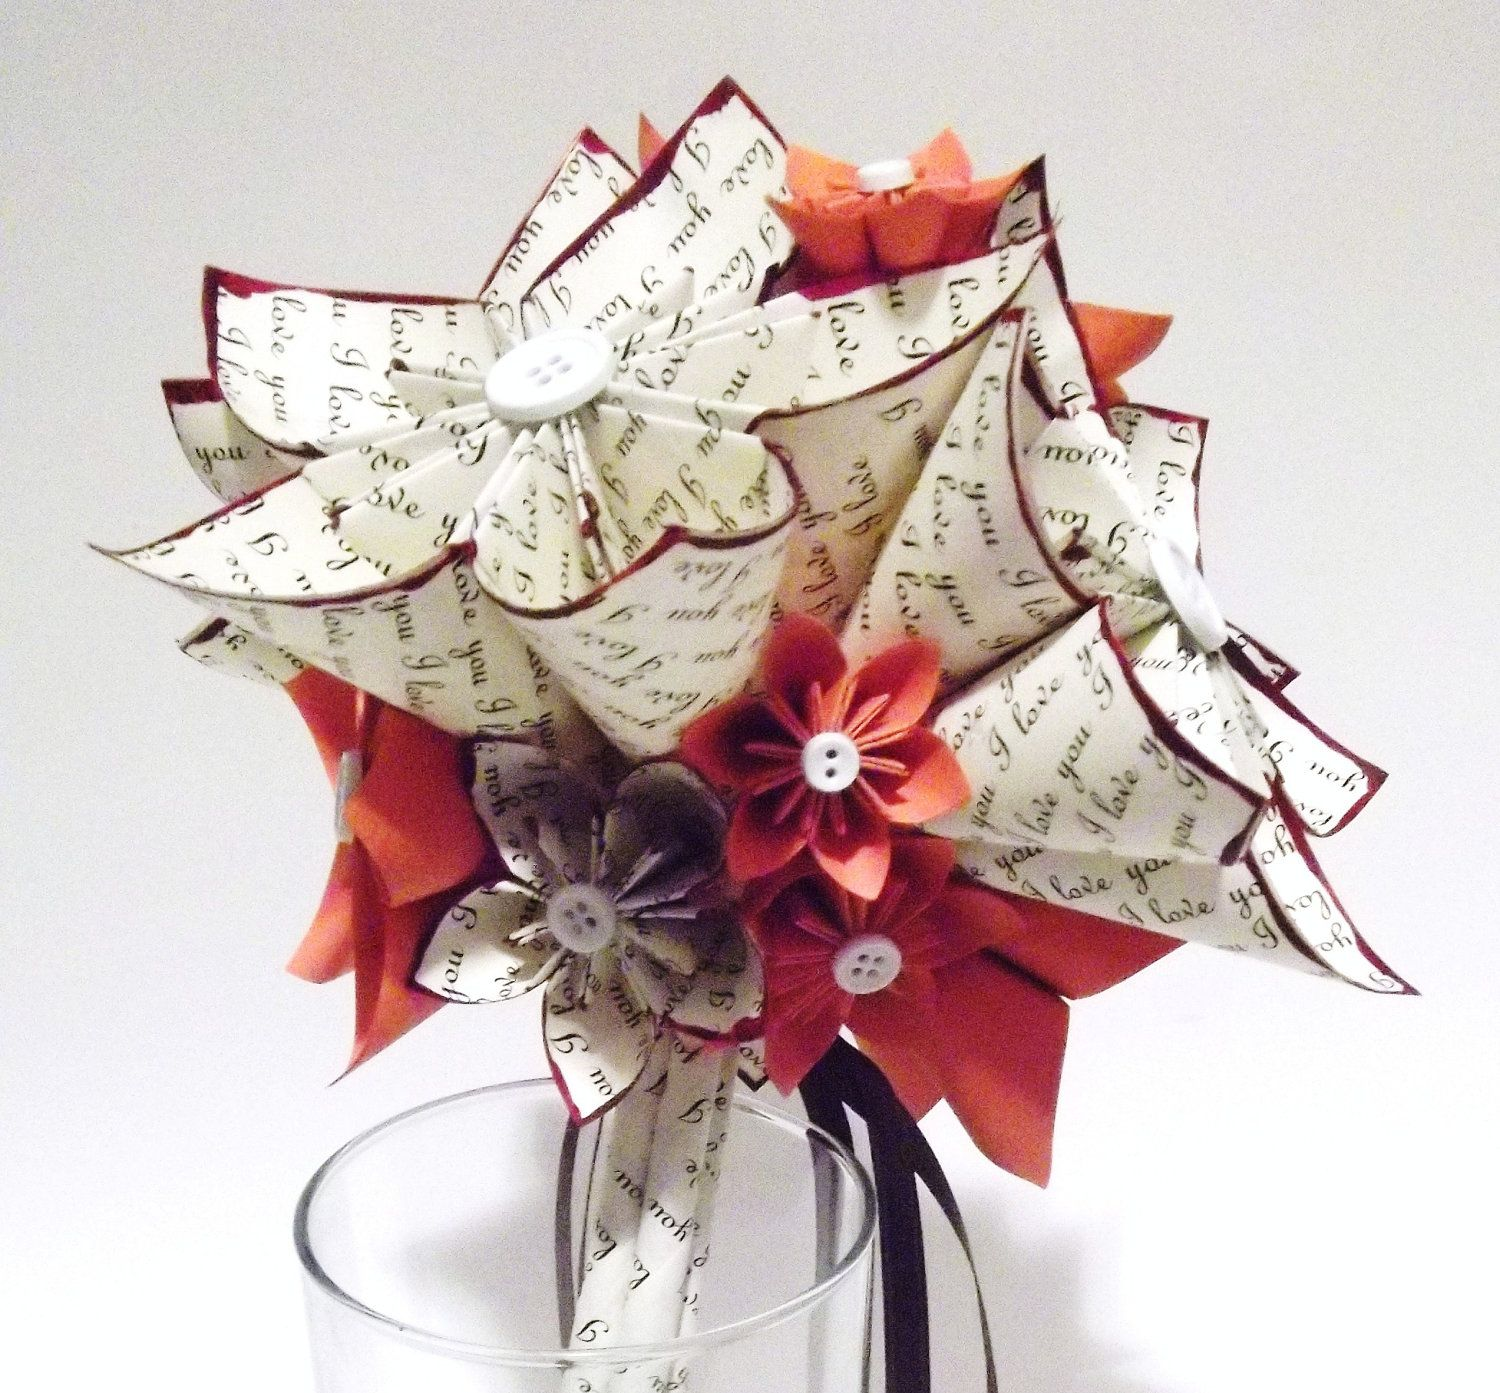 I Love You Paper Flower Wedding Bouquet 8 Inch 15 Flowers Origami Bridal Anniversary One Of A Kind Made To Order